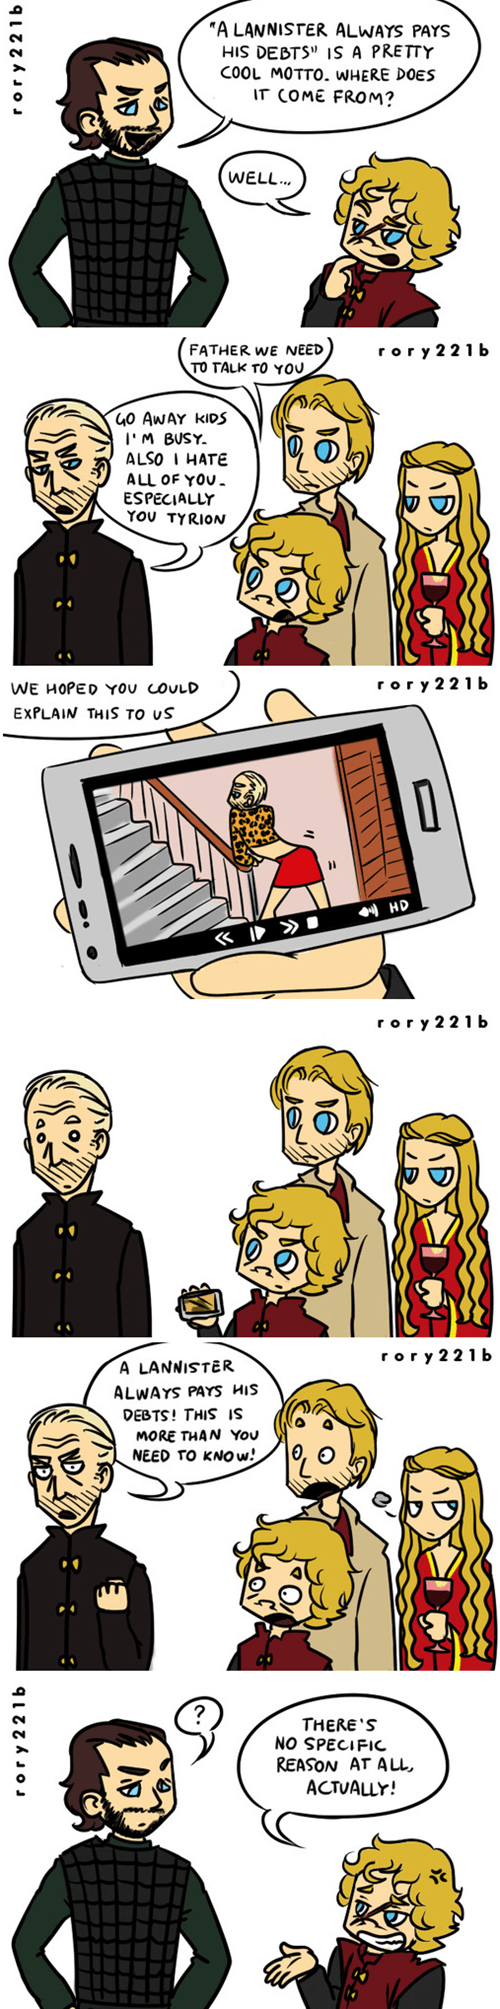 tywin lannister Game of Thrones Lannisters - 8194739968